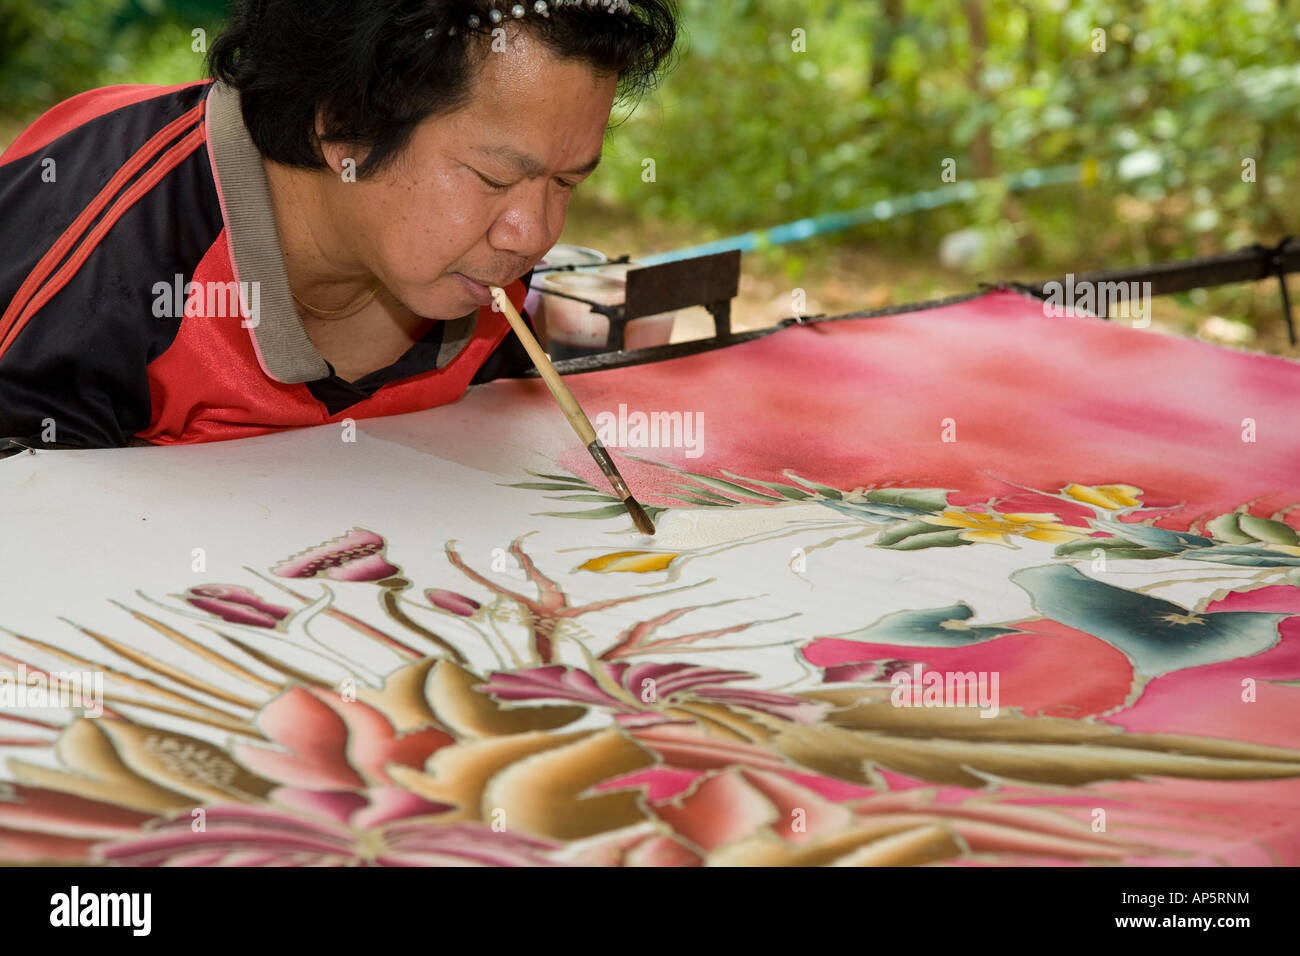 Amputee Asian Disability Artist A Disabled Mouth Painter Art Stock Photo Alamy